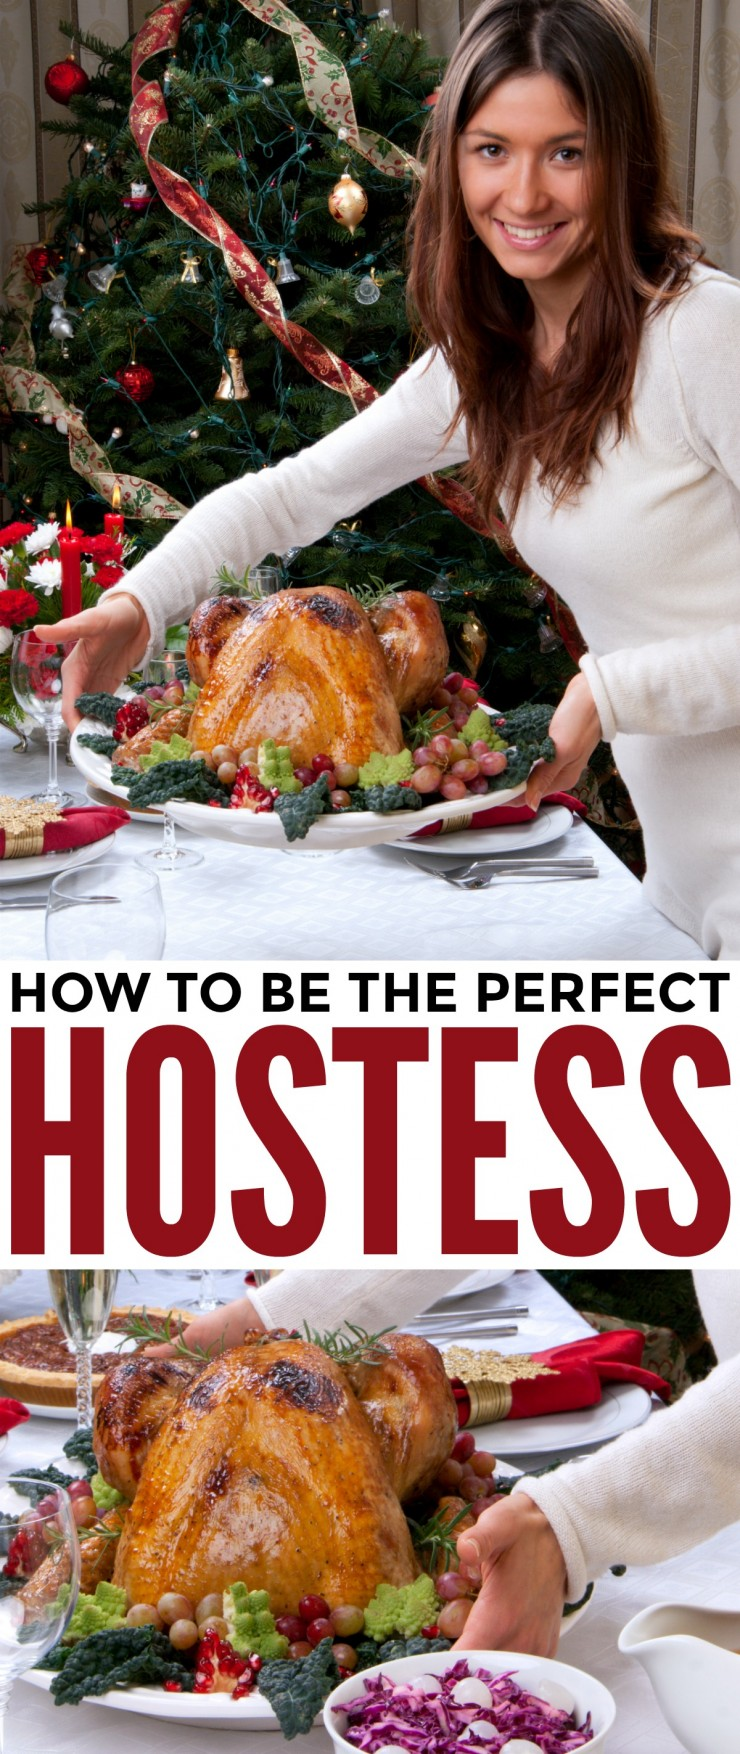 Making sure to take the right steps when planning your event is one of the most important parts of being the perfect hostess.